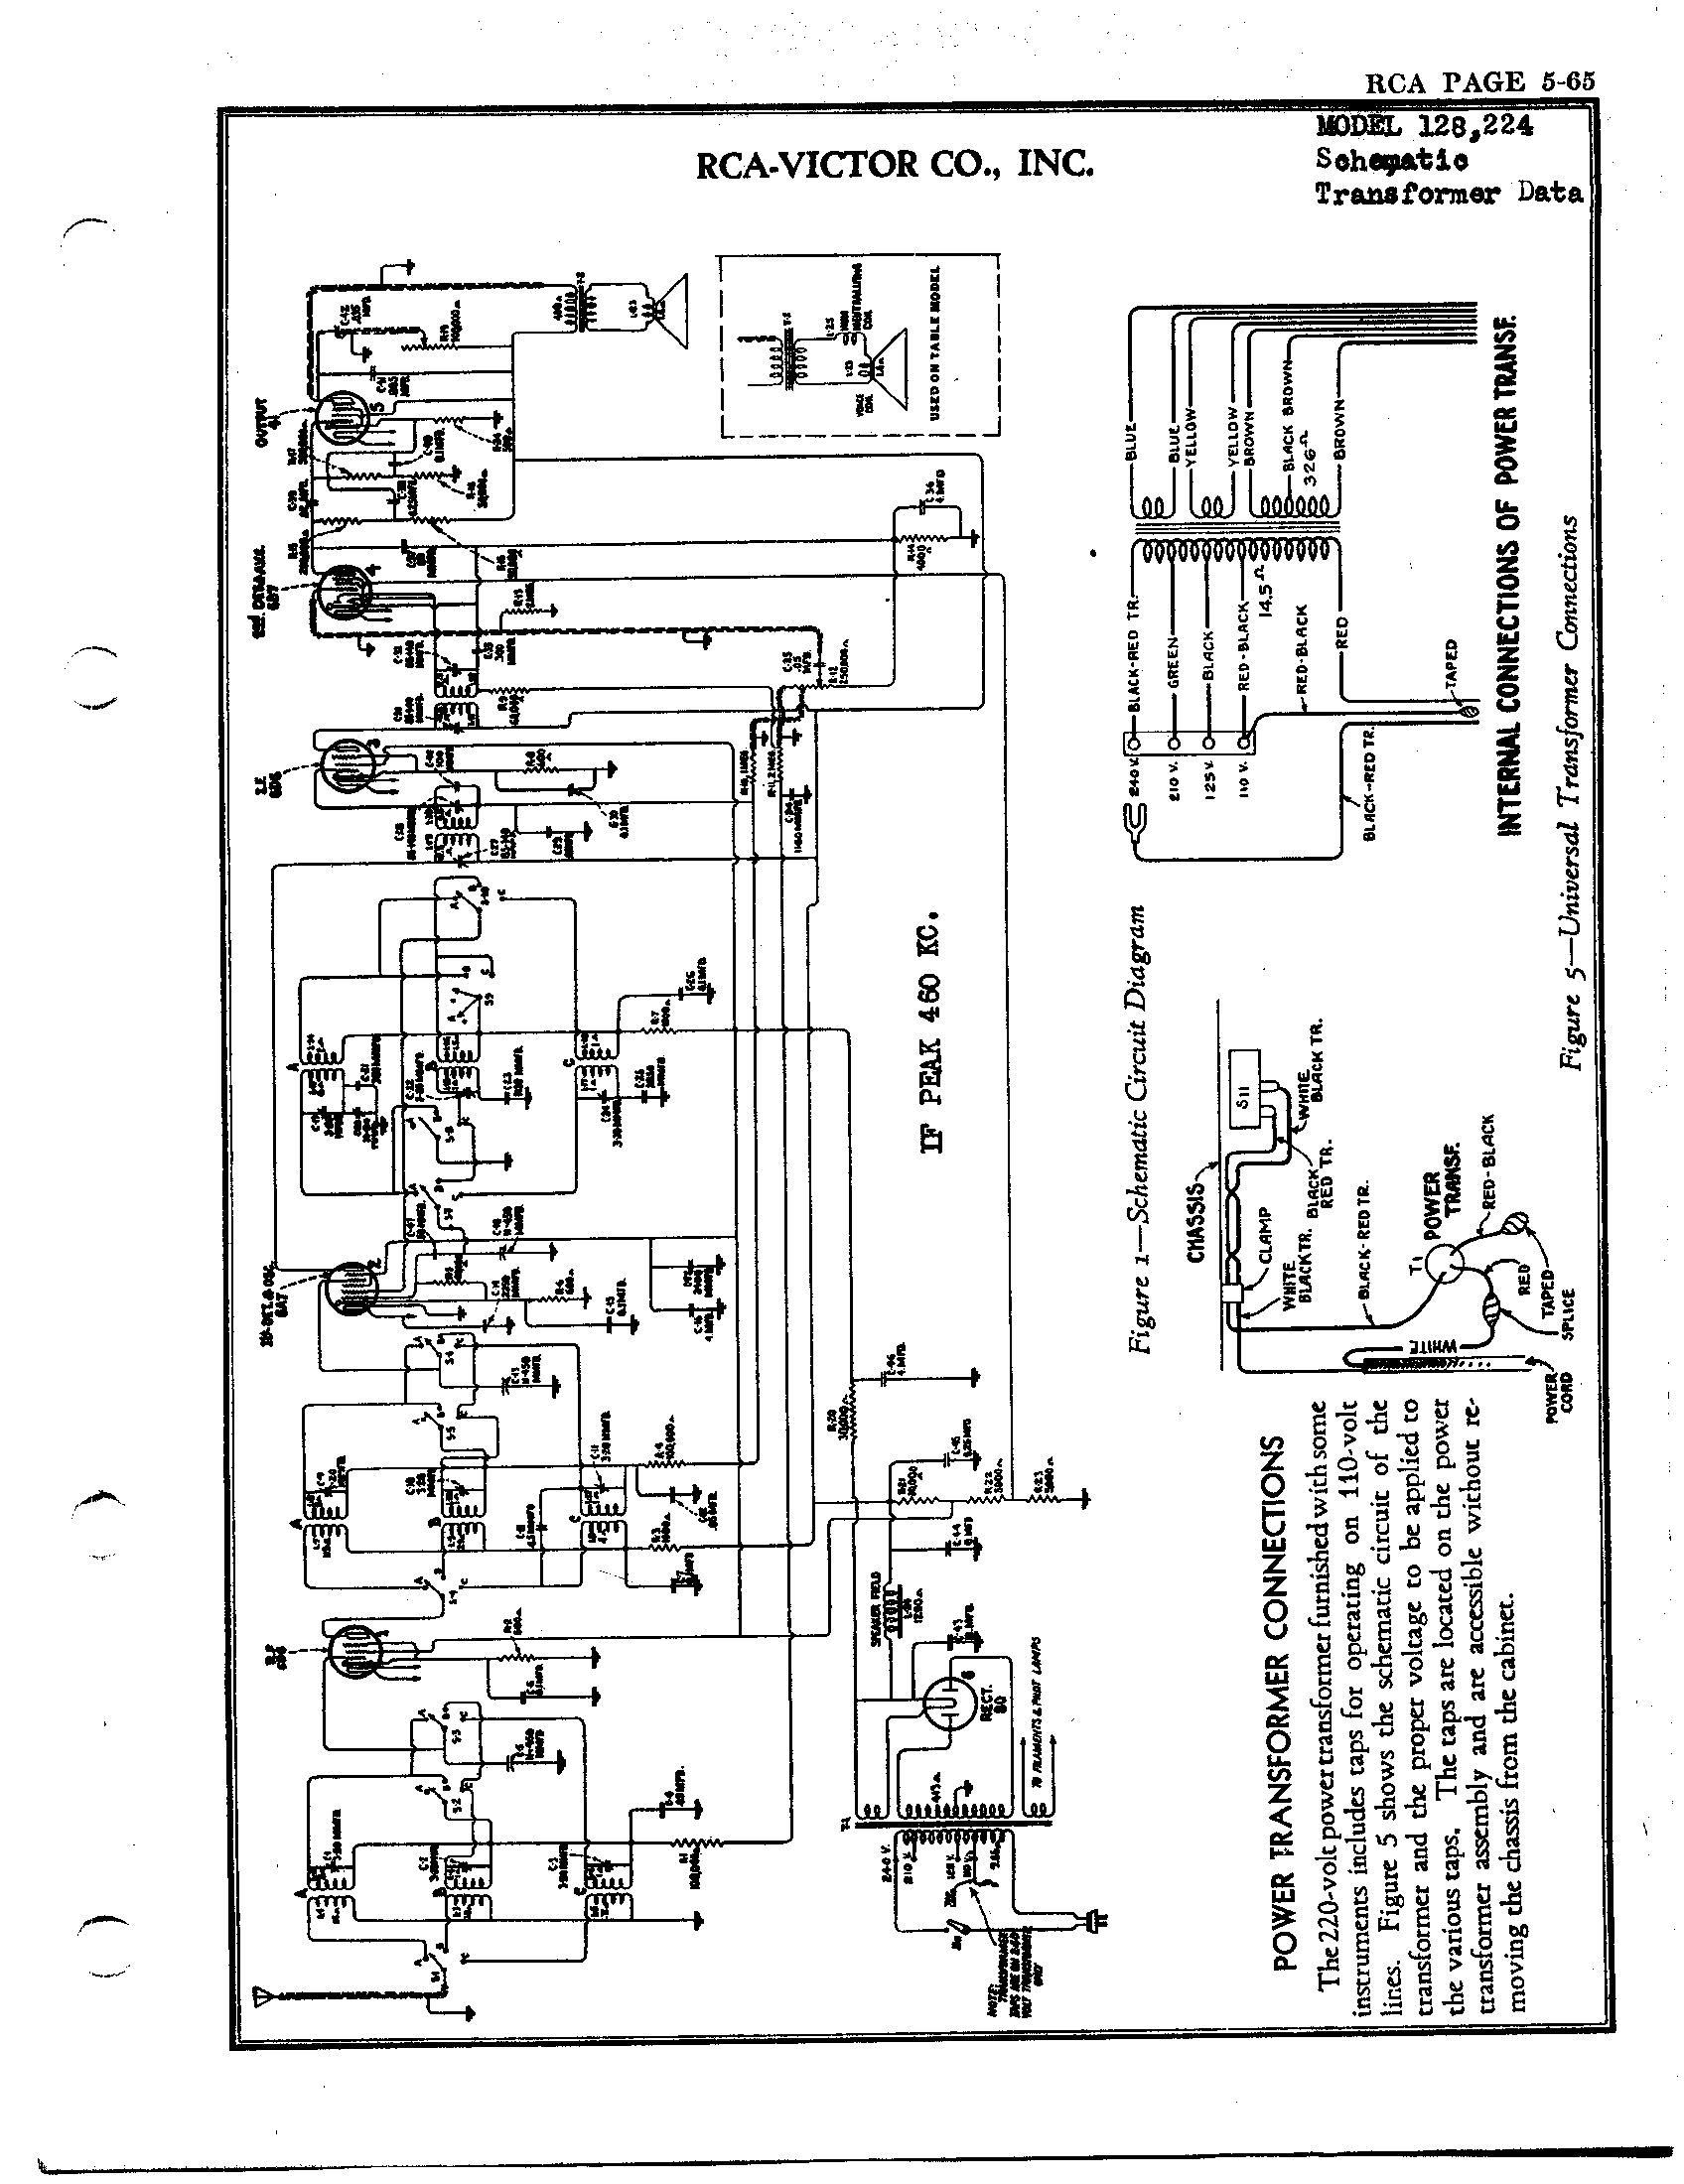 Amazing Schematic Pages